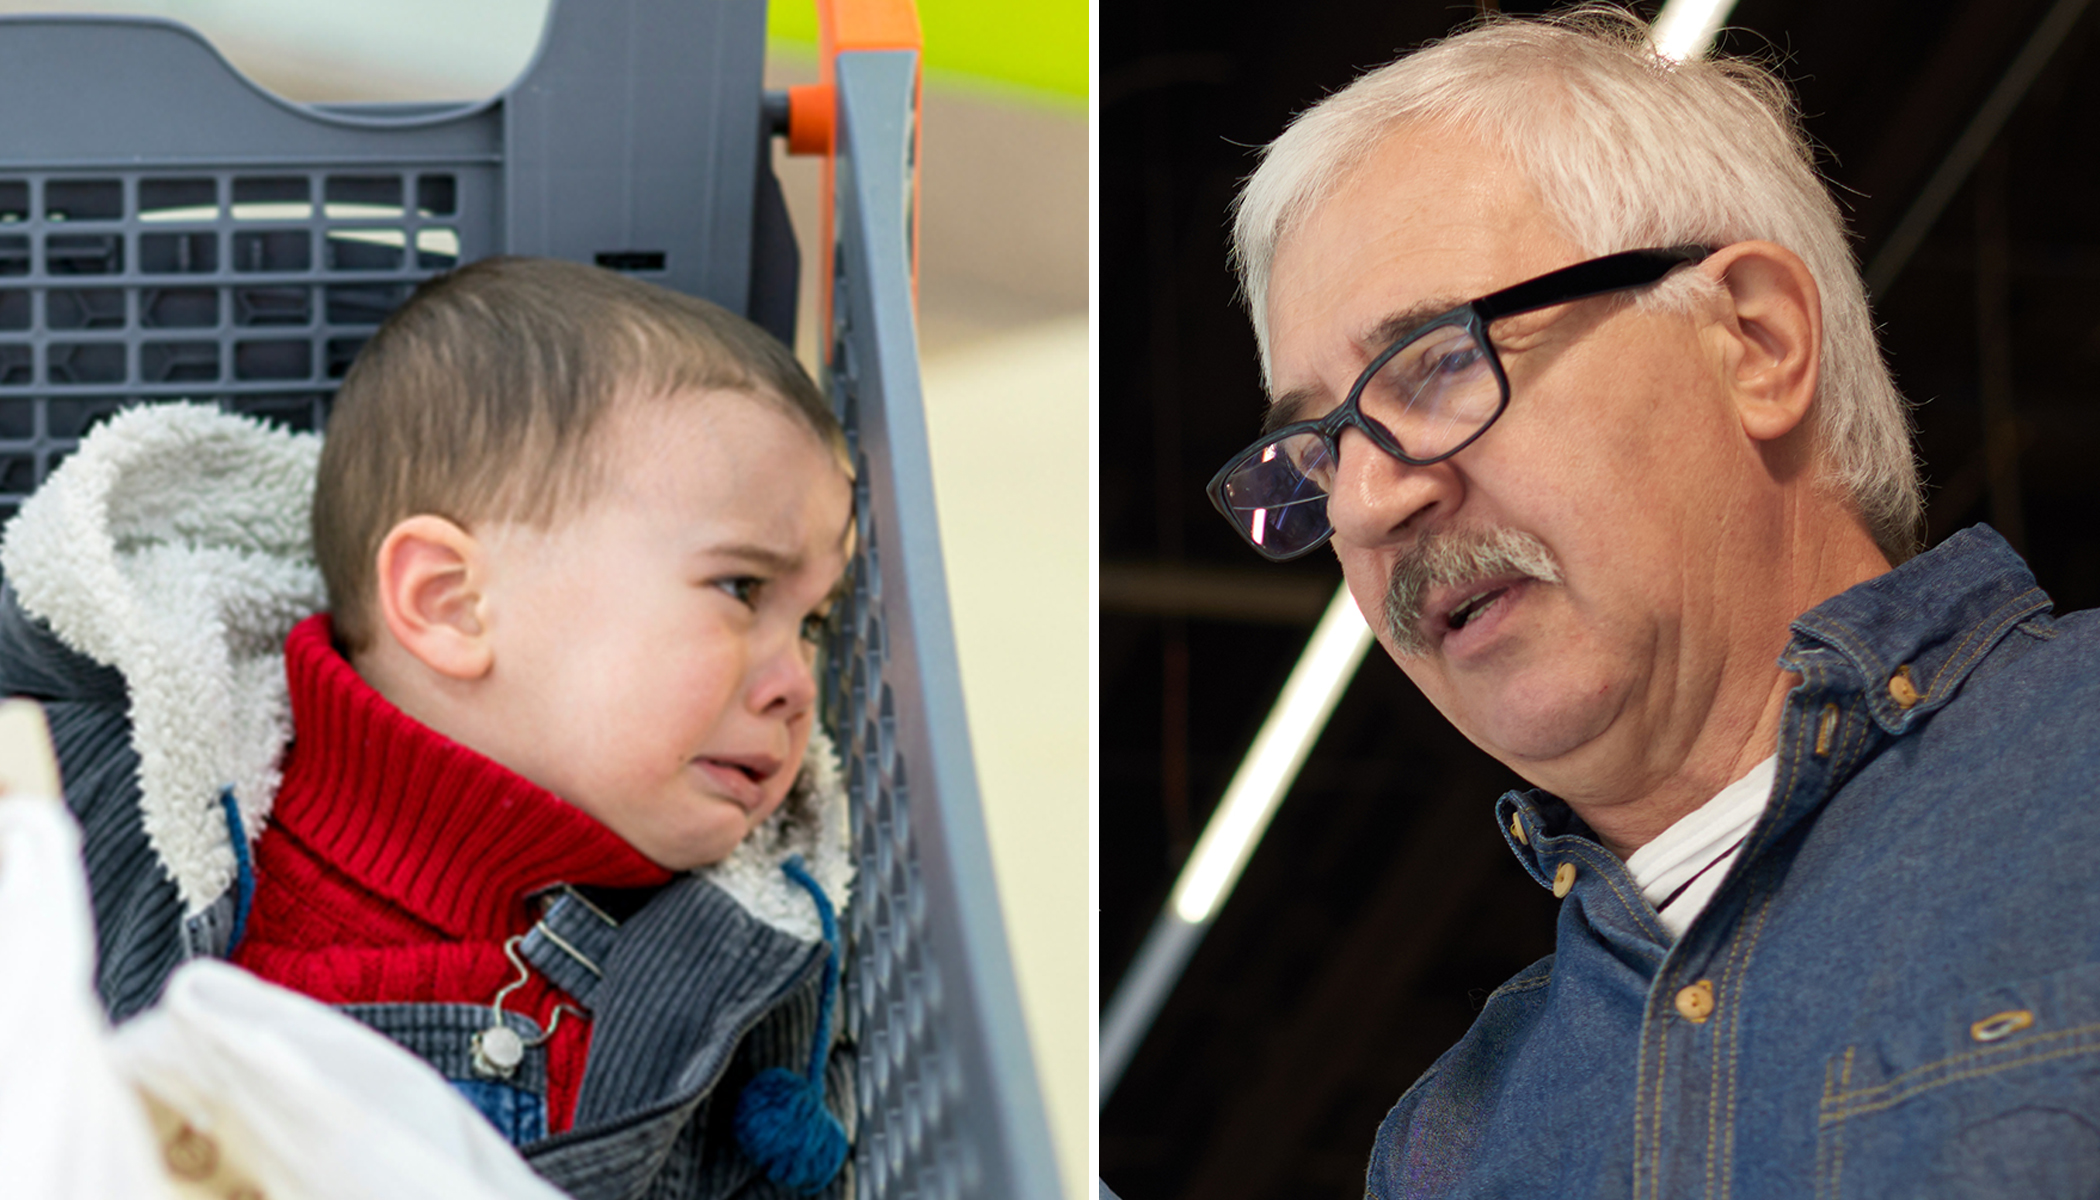 Stranger Follows Grandpa and 'Little Brat' in Supermarket, but Didn't Expect Him to Tell Her This